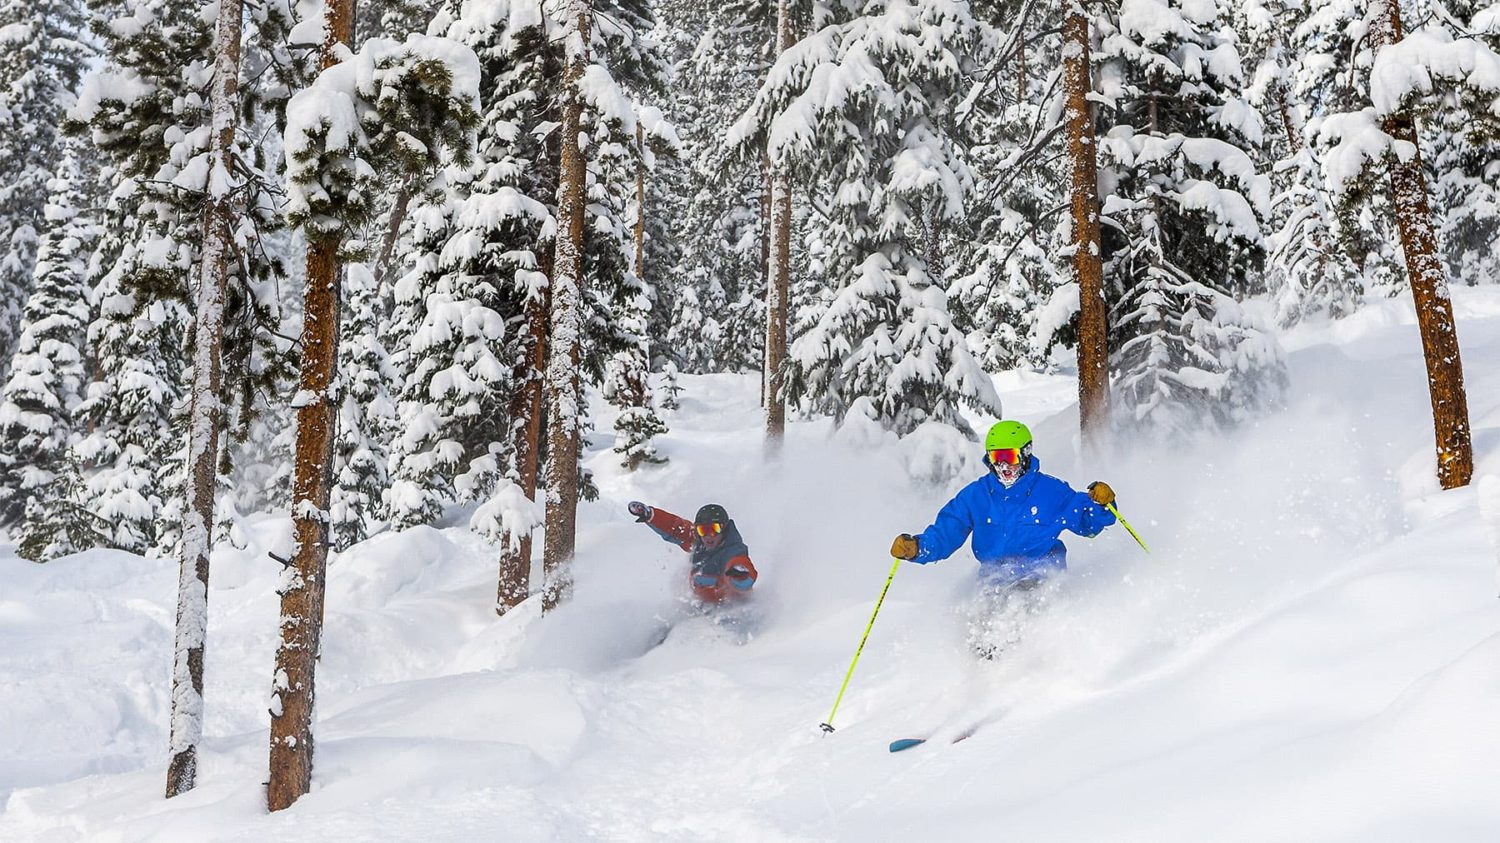 Winter Park, Intrawest, Steamboat, Squaw Valley, Mammoth